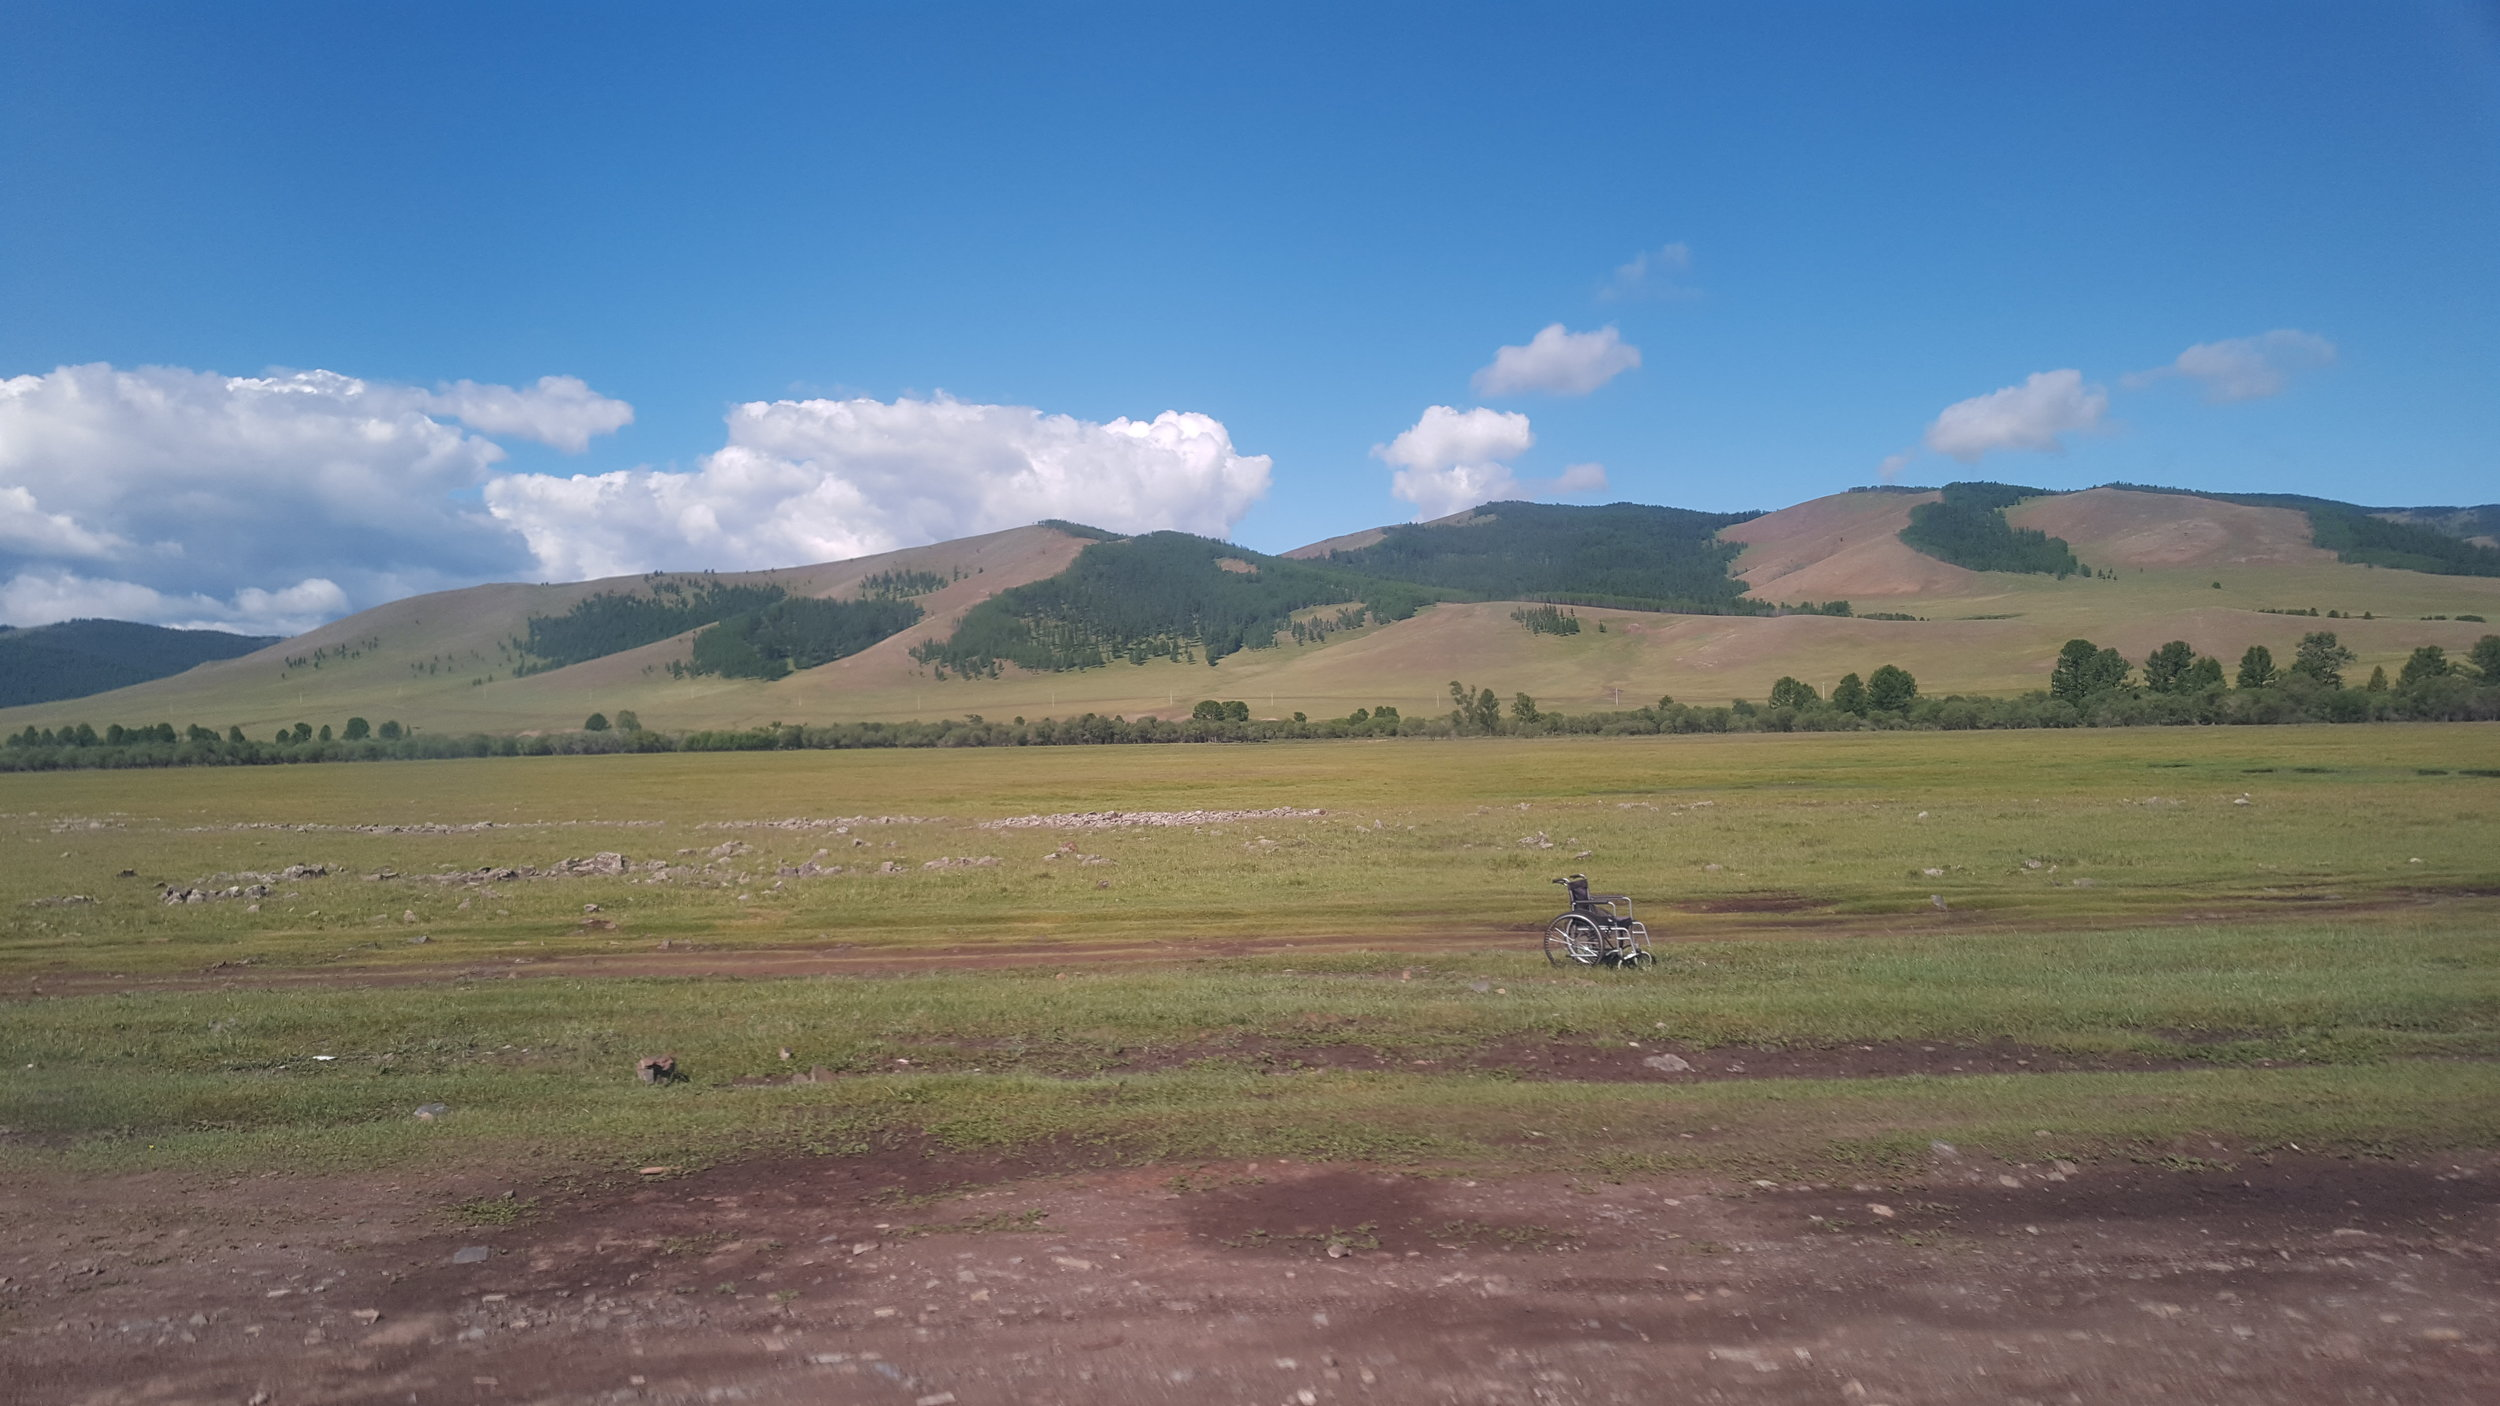 A poignant image, a wheelchair empty, in the middle of the steppes.